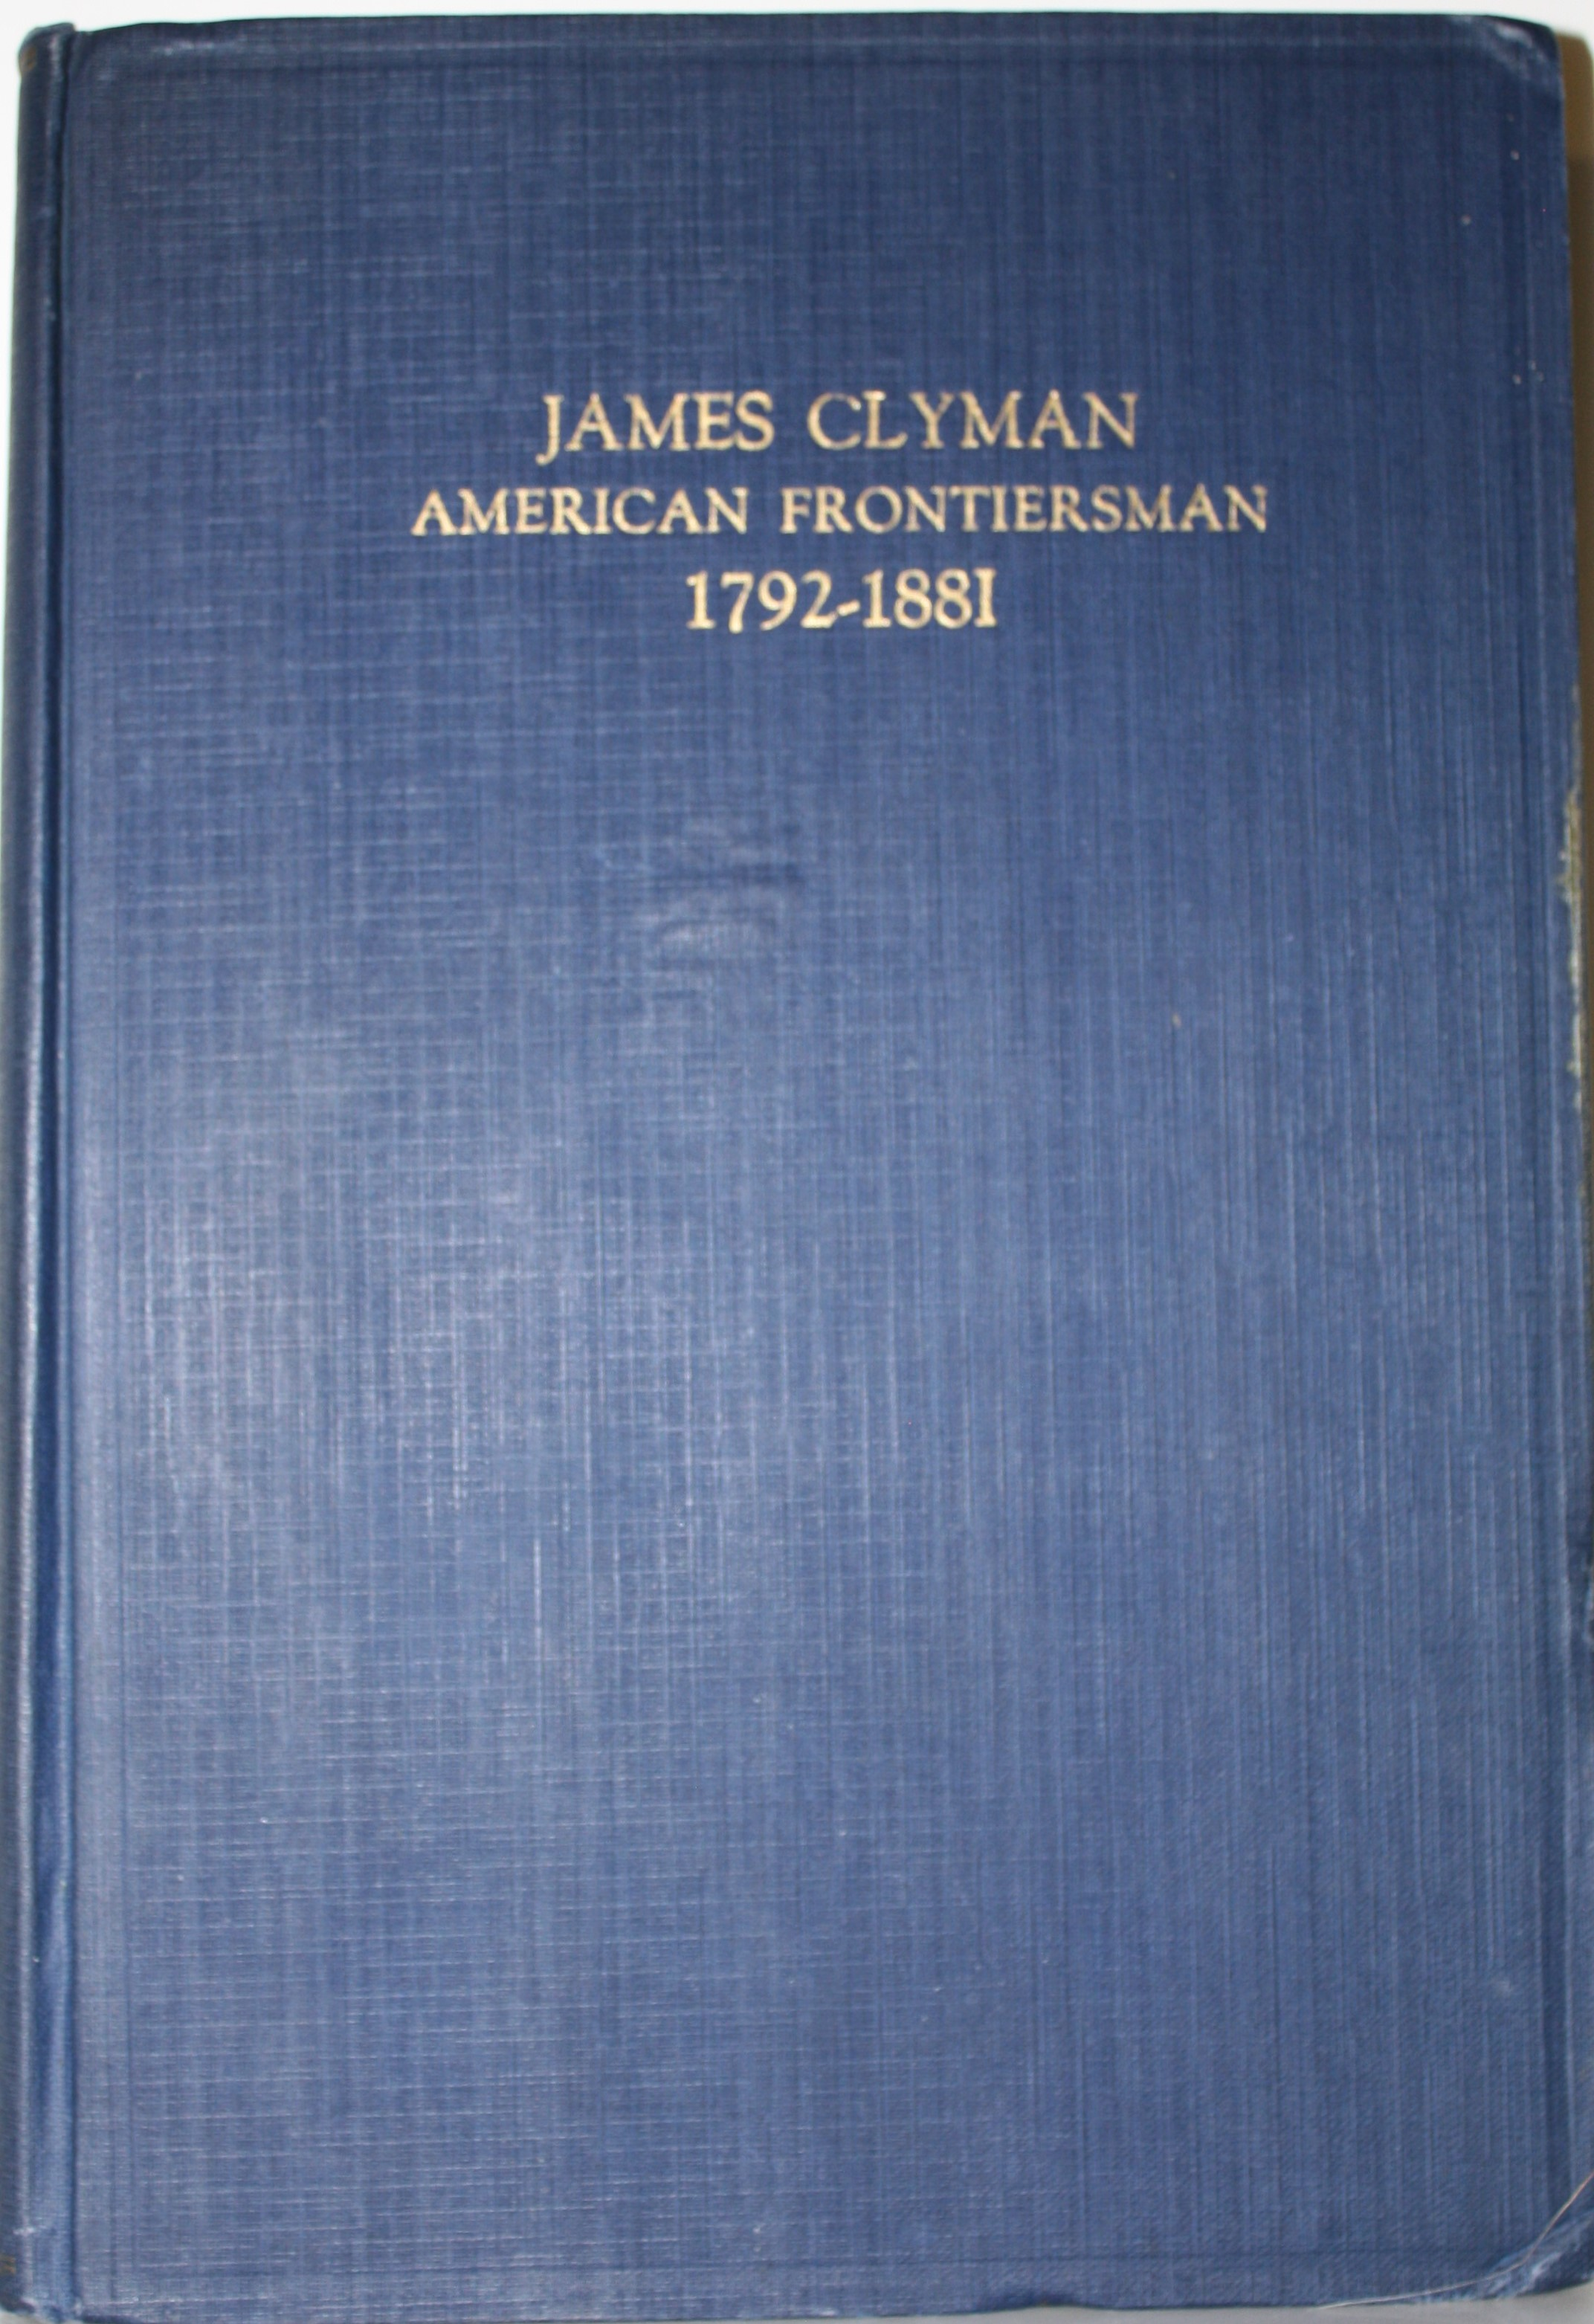 Image for James Clyman  American Frontiersman 1792-1881 The Adventures Of A Trapper And Covered Wagon Emigrant As Told In His Own Reminiscences And Diaries